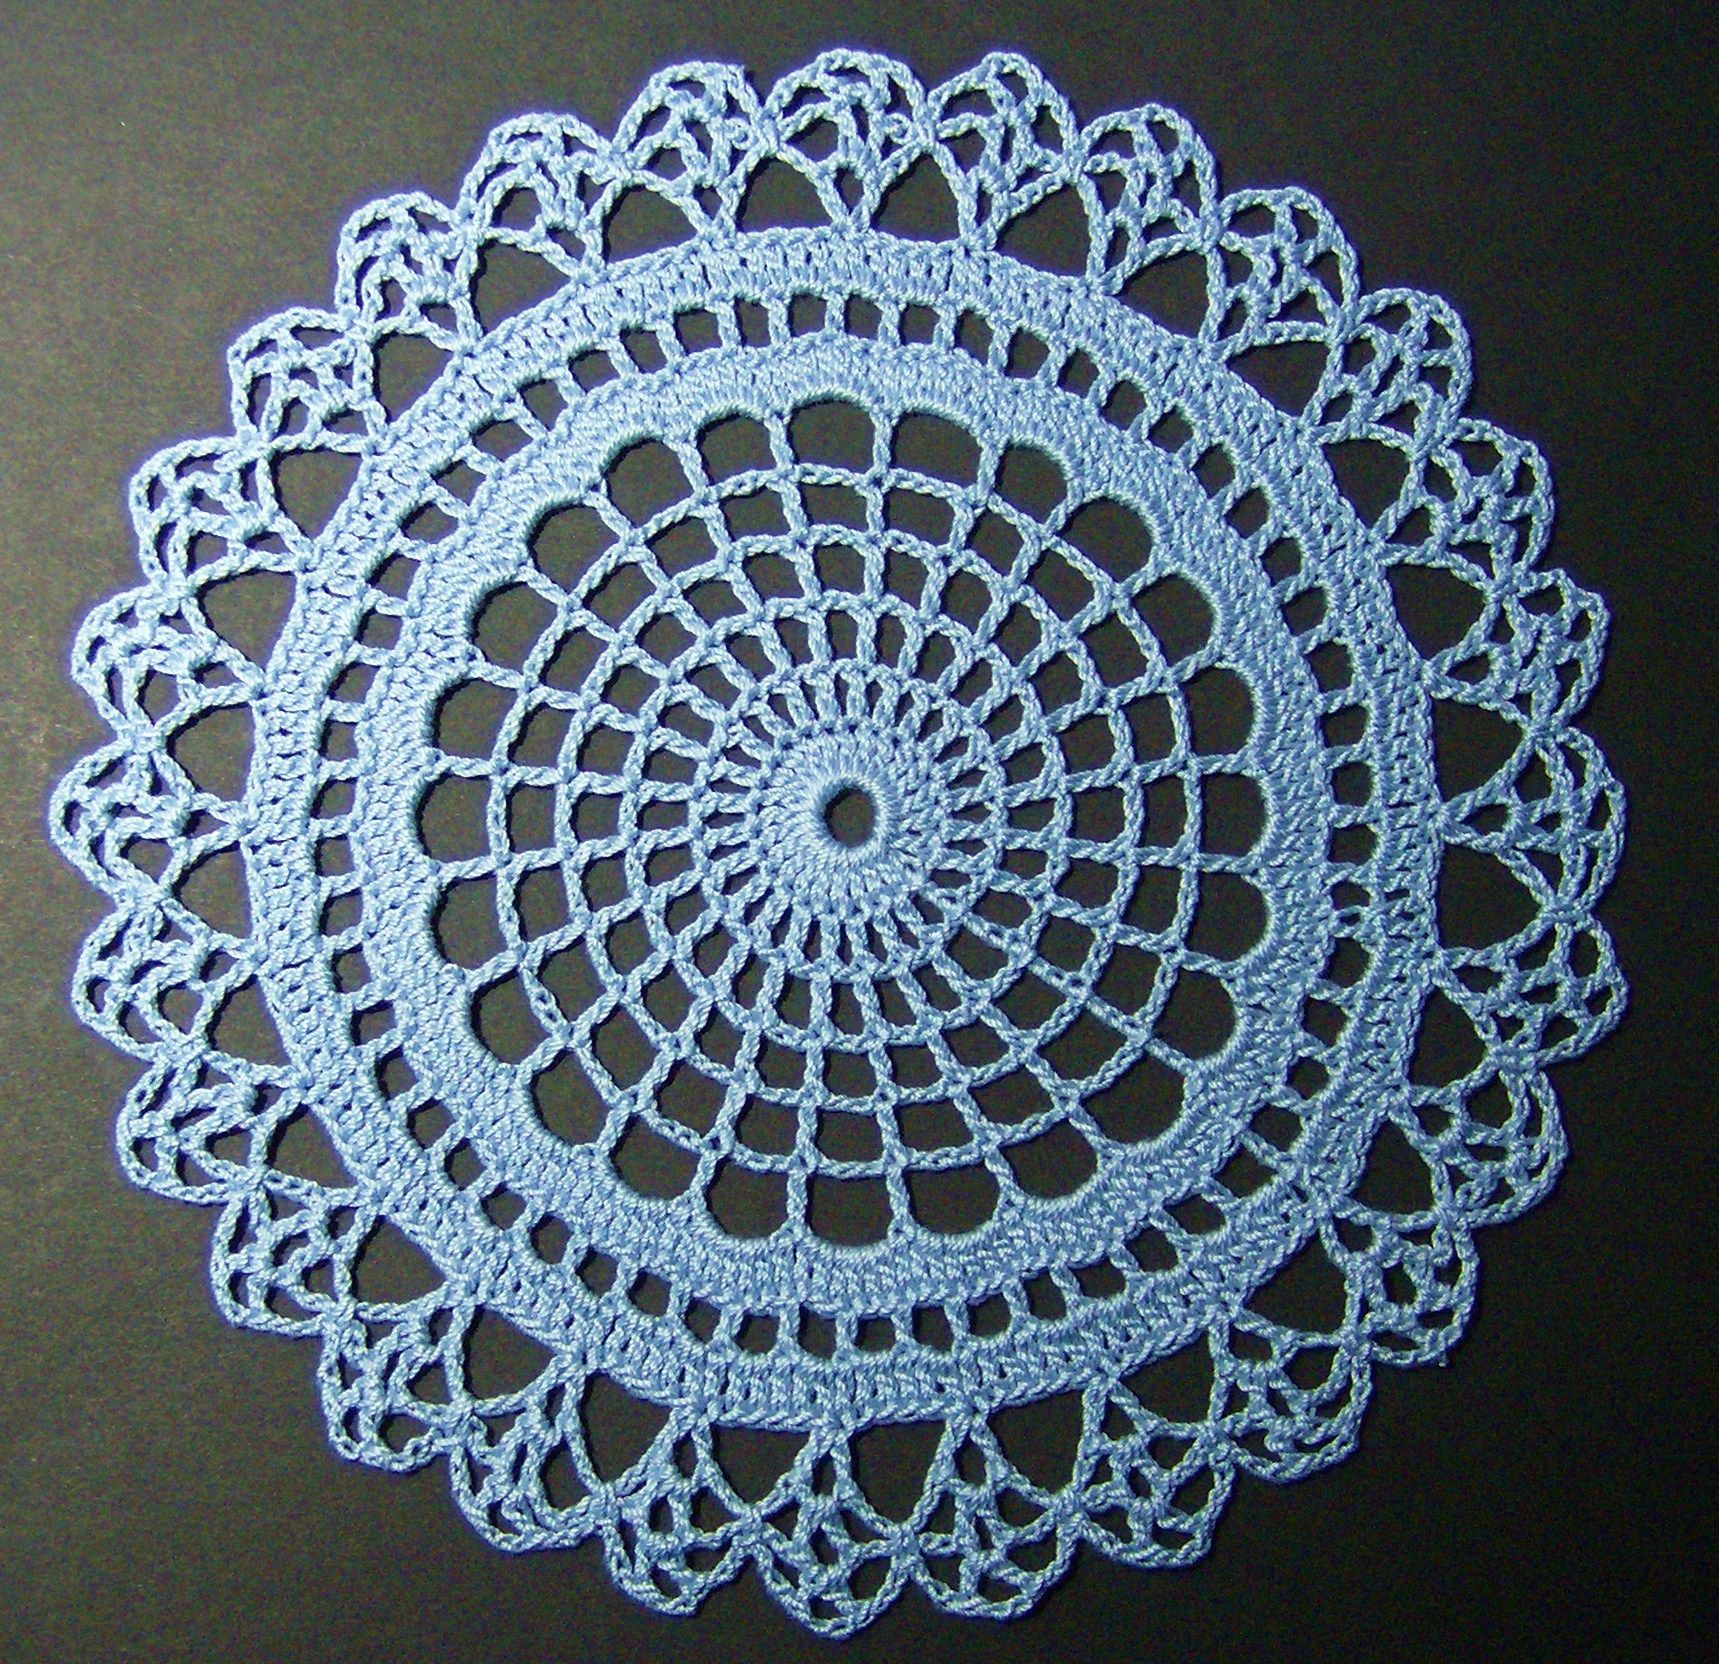 Crochet doily handmade crochet doilies ive made pinterest crochet doily handmade free doily patternscrochet bankloansurffo Image collections